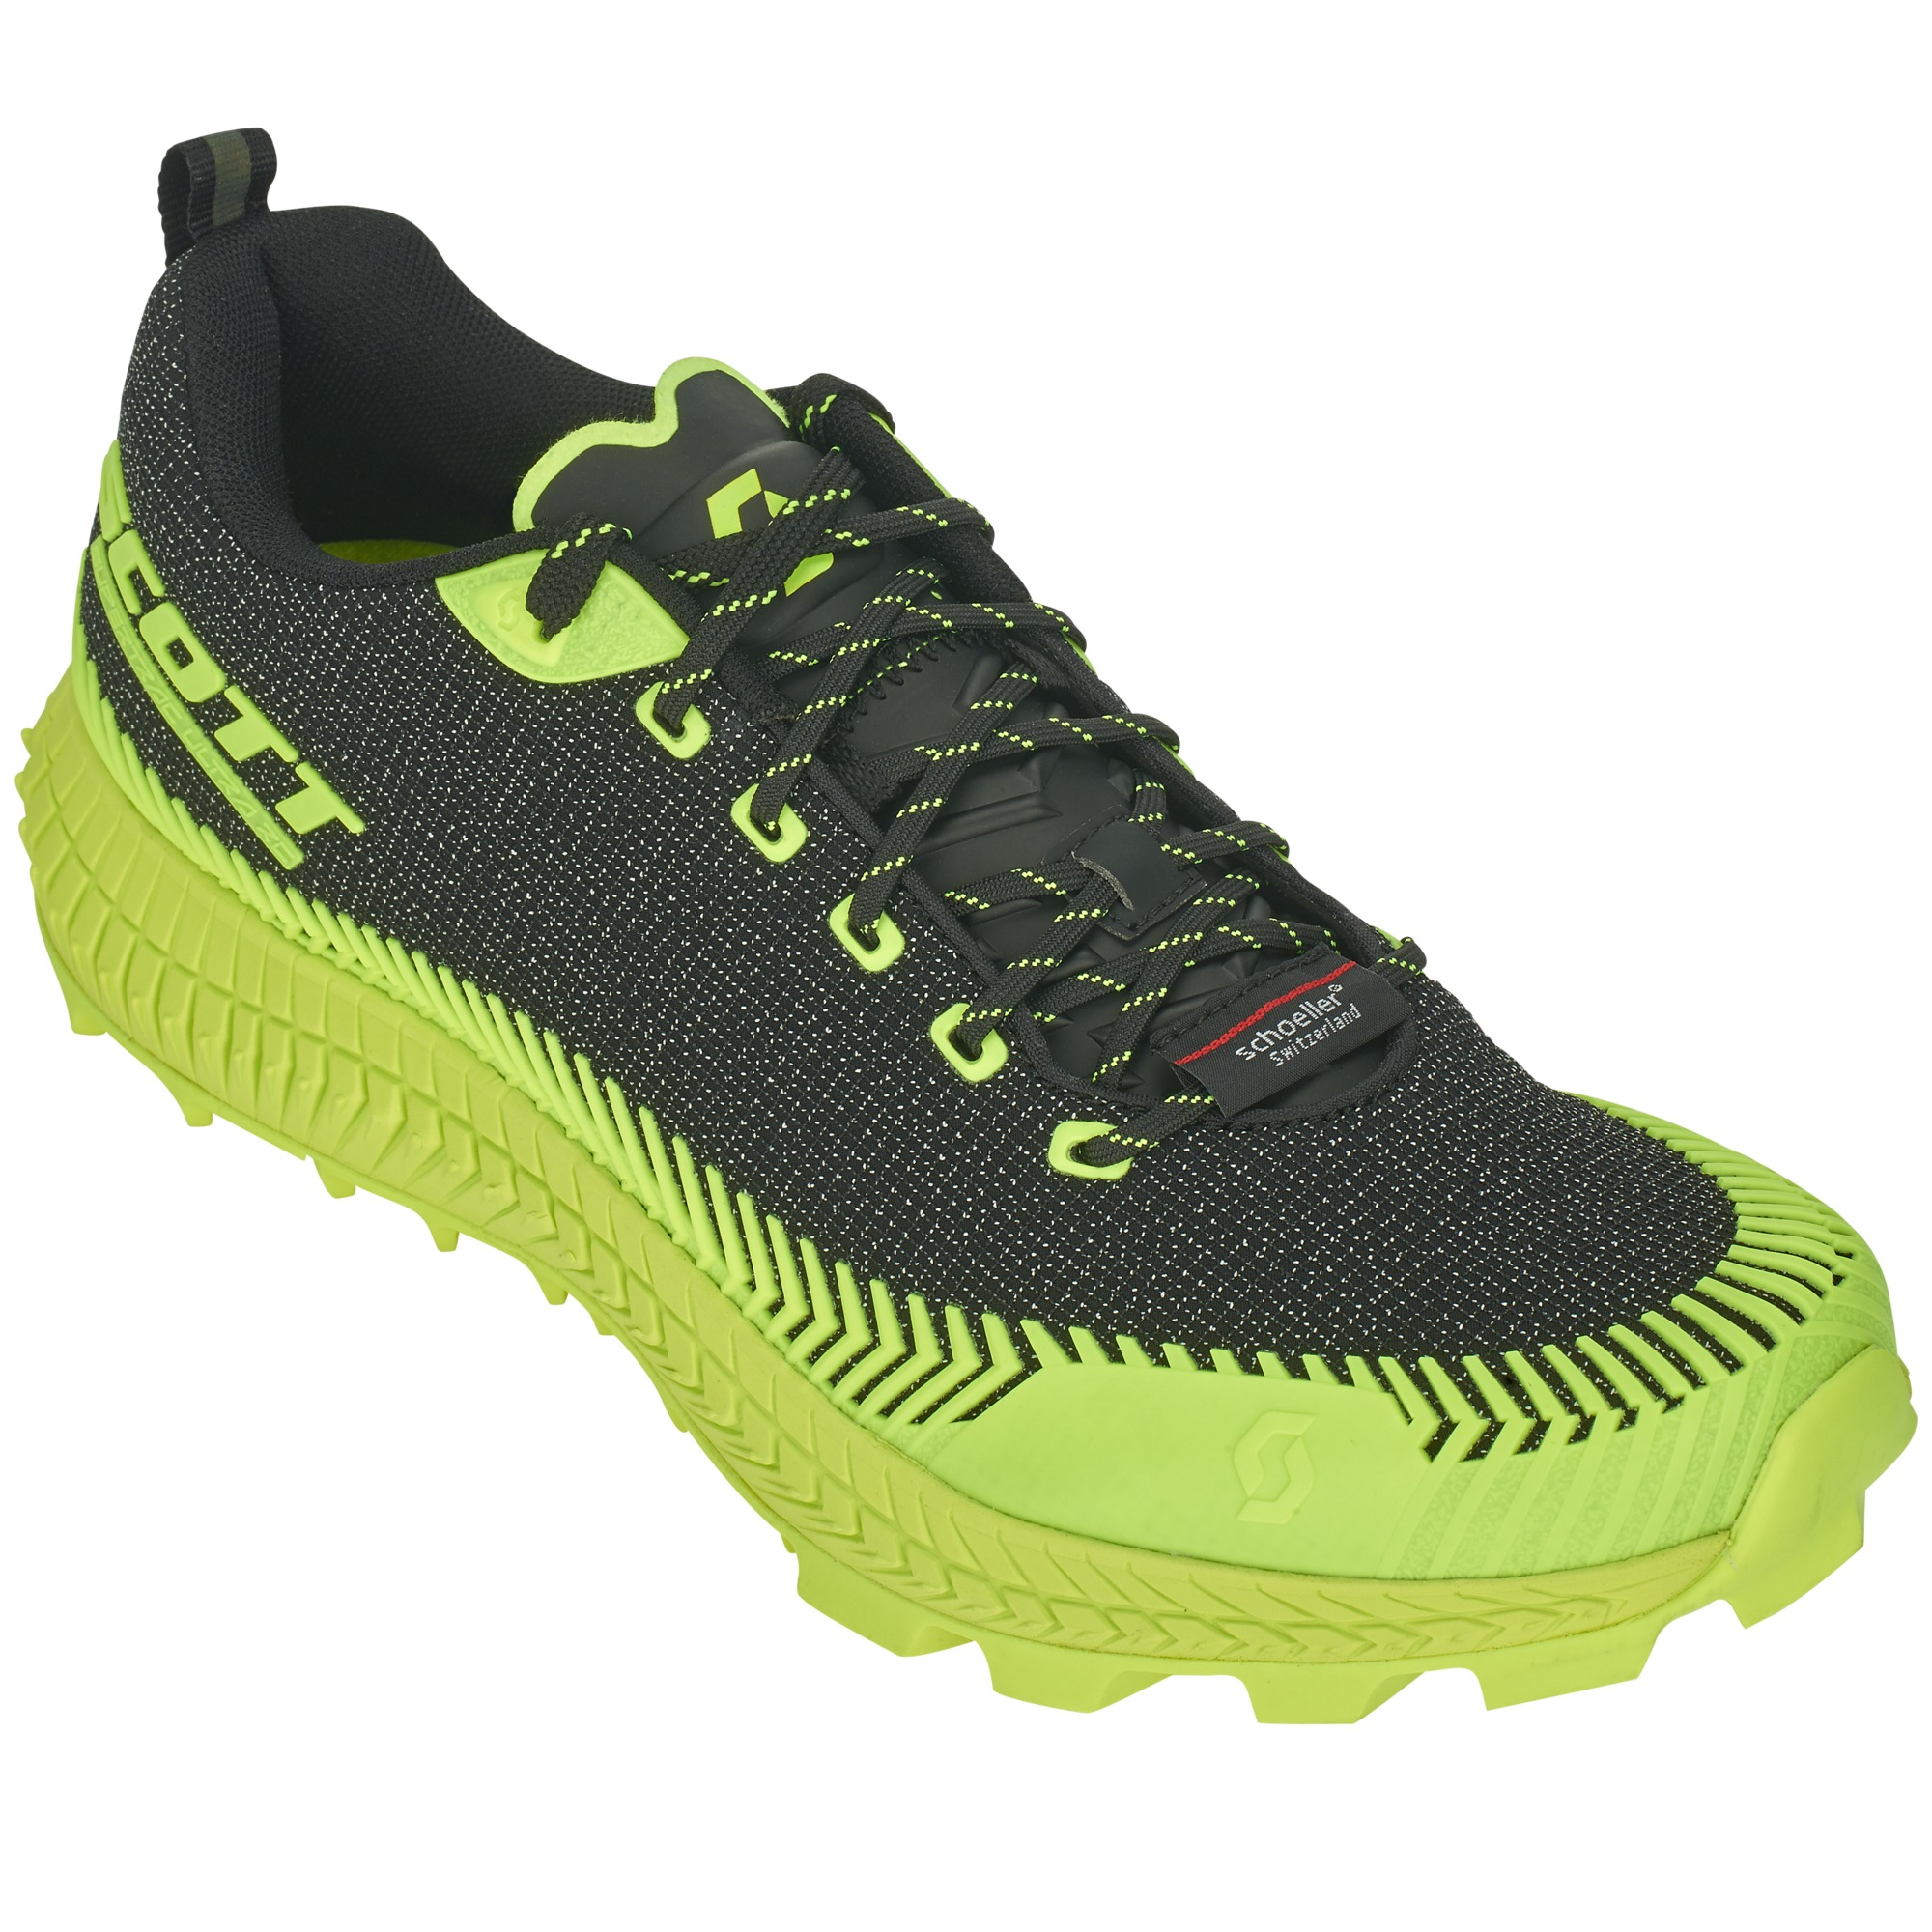 Scarpe da donna SCOTT Supertrac Ultra RC